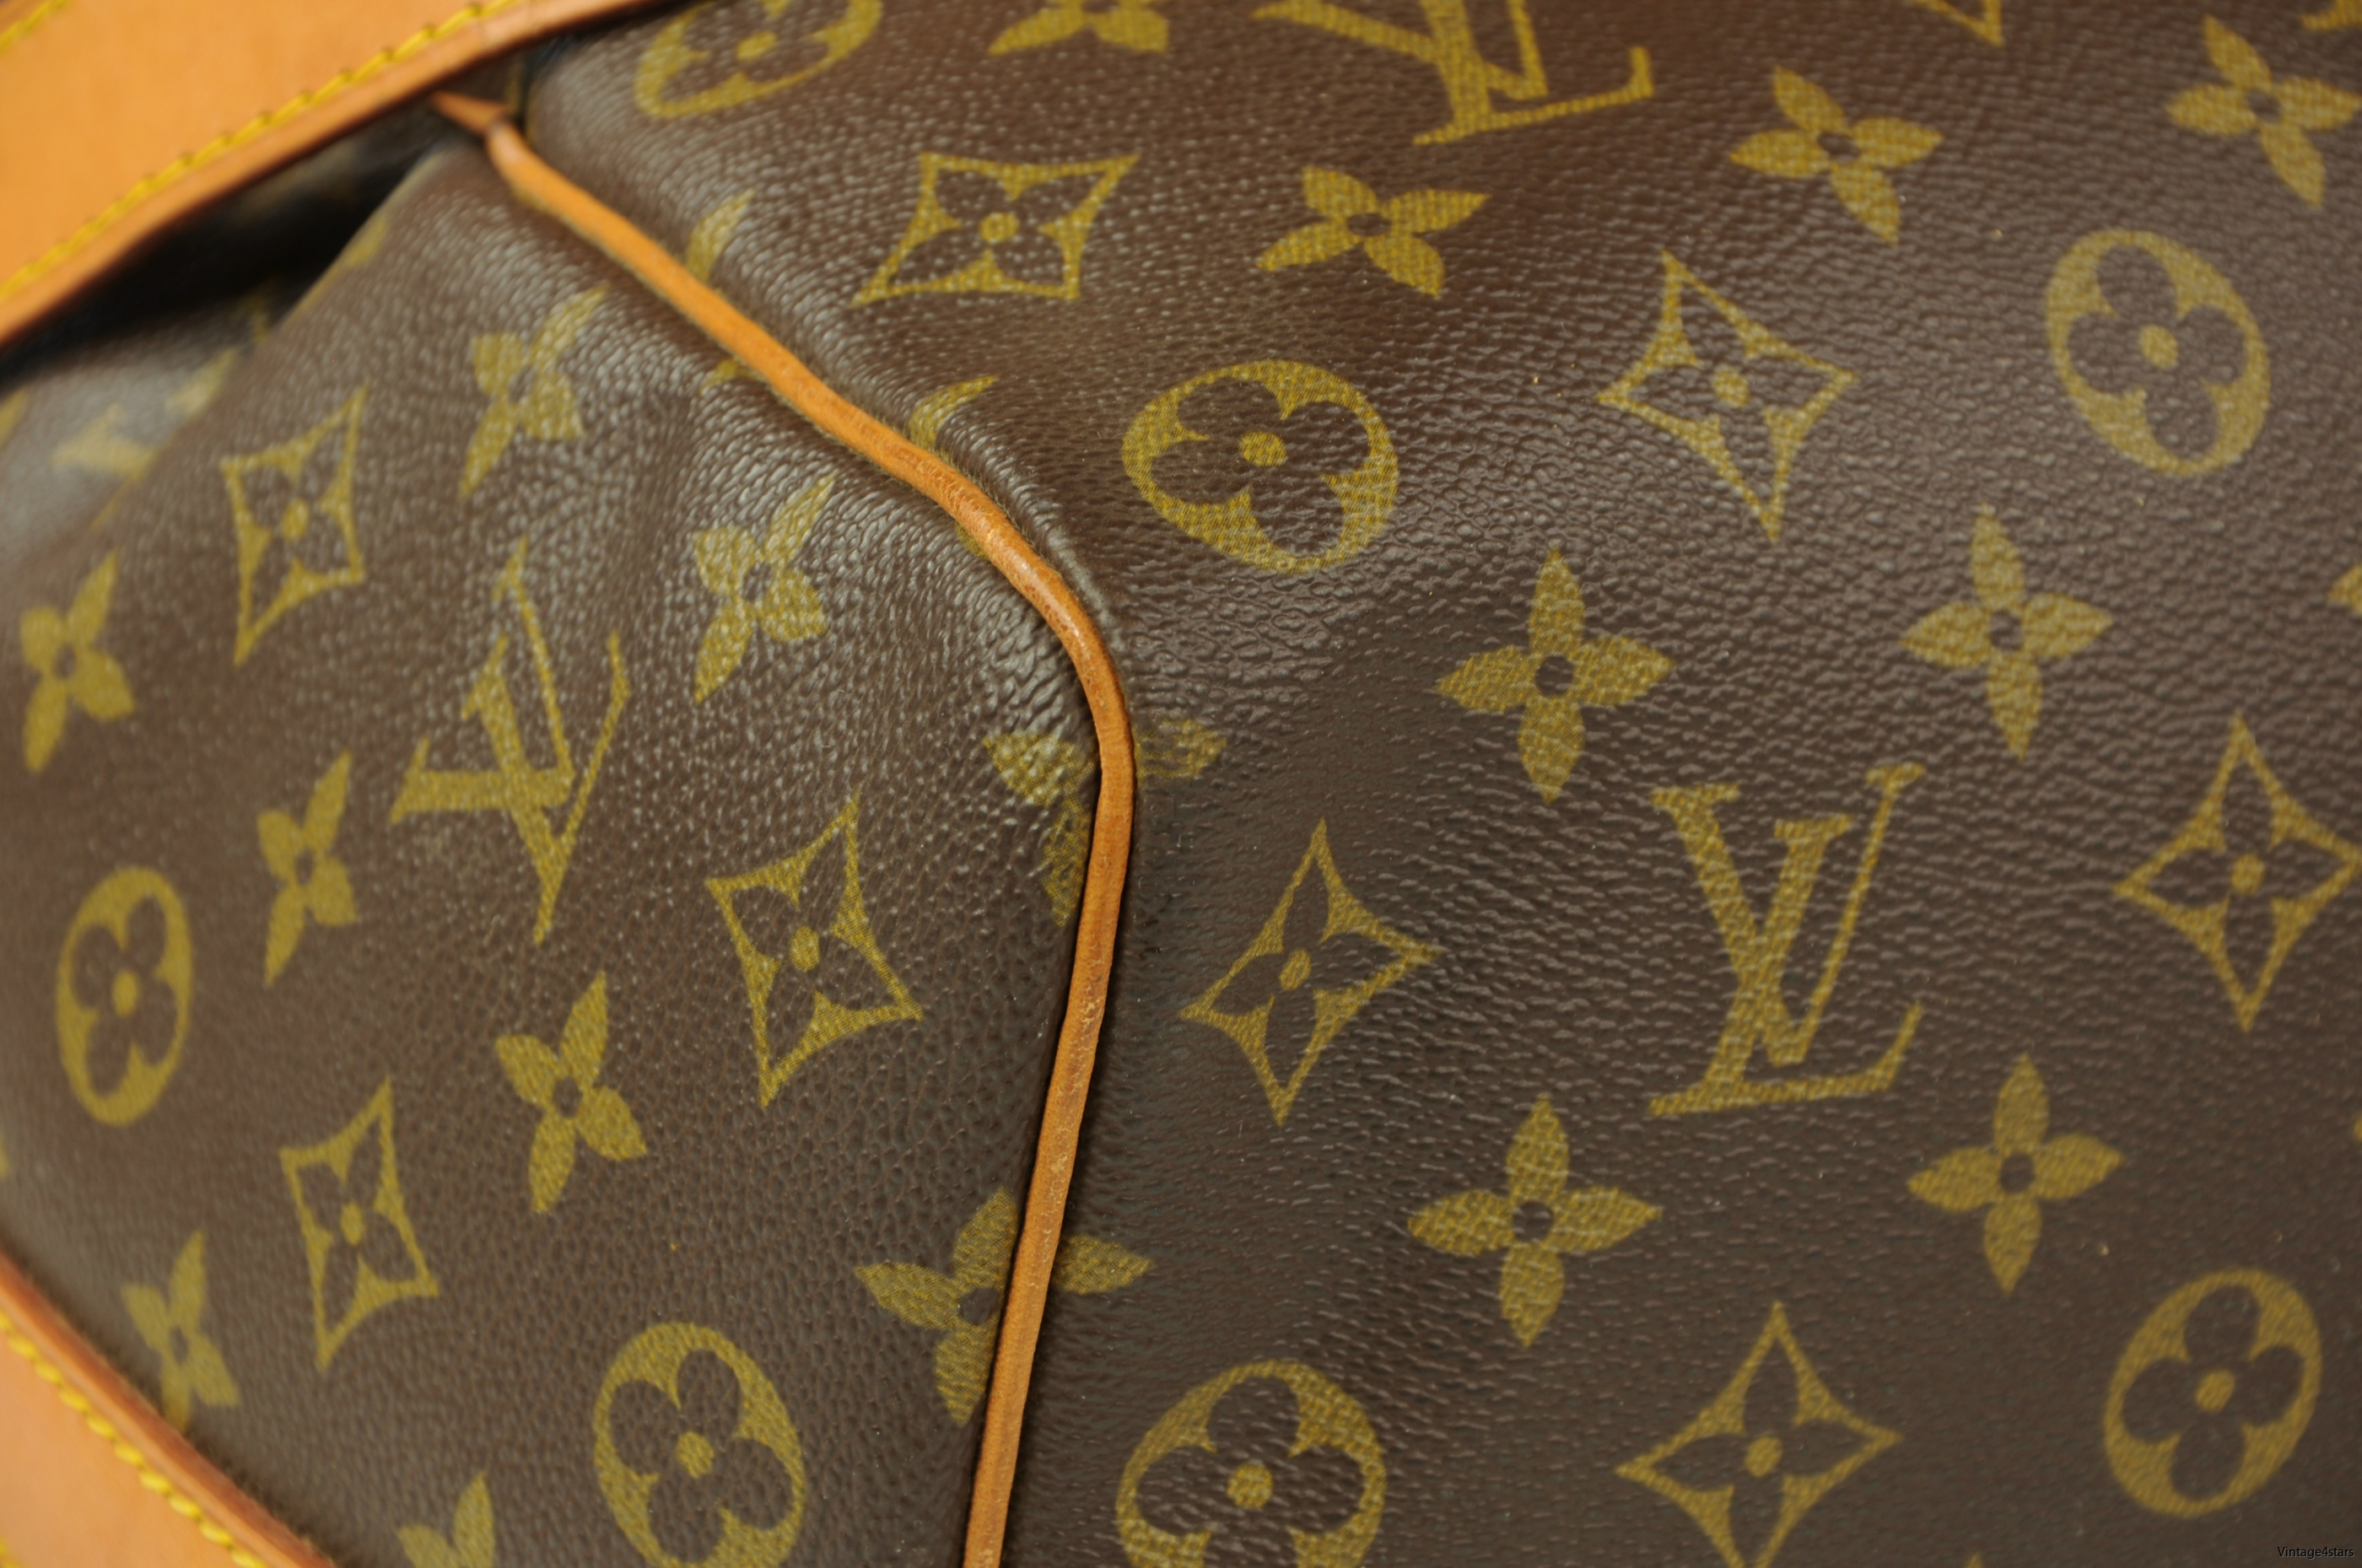 Louis Vuitton Keepall 50 Bandouliere 9